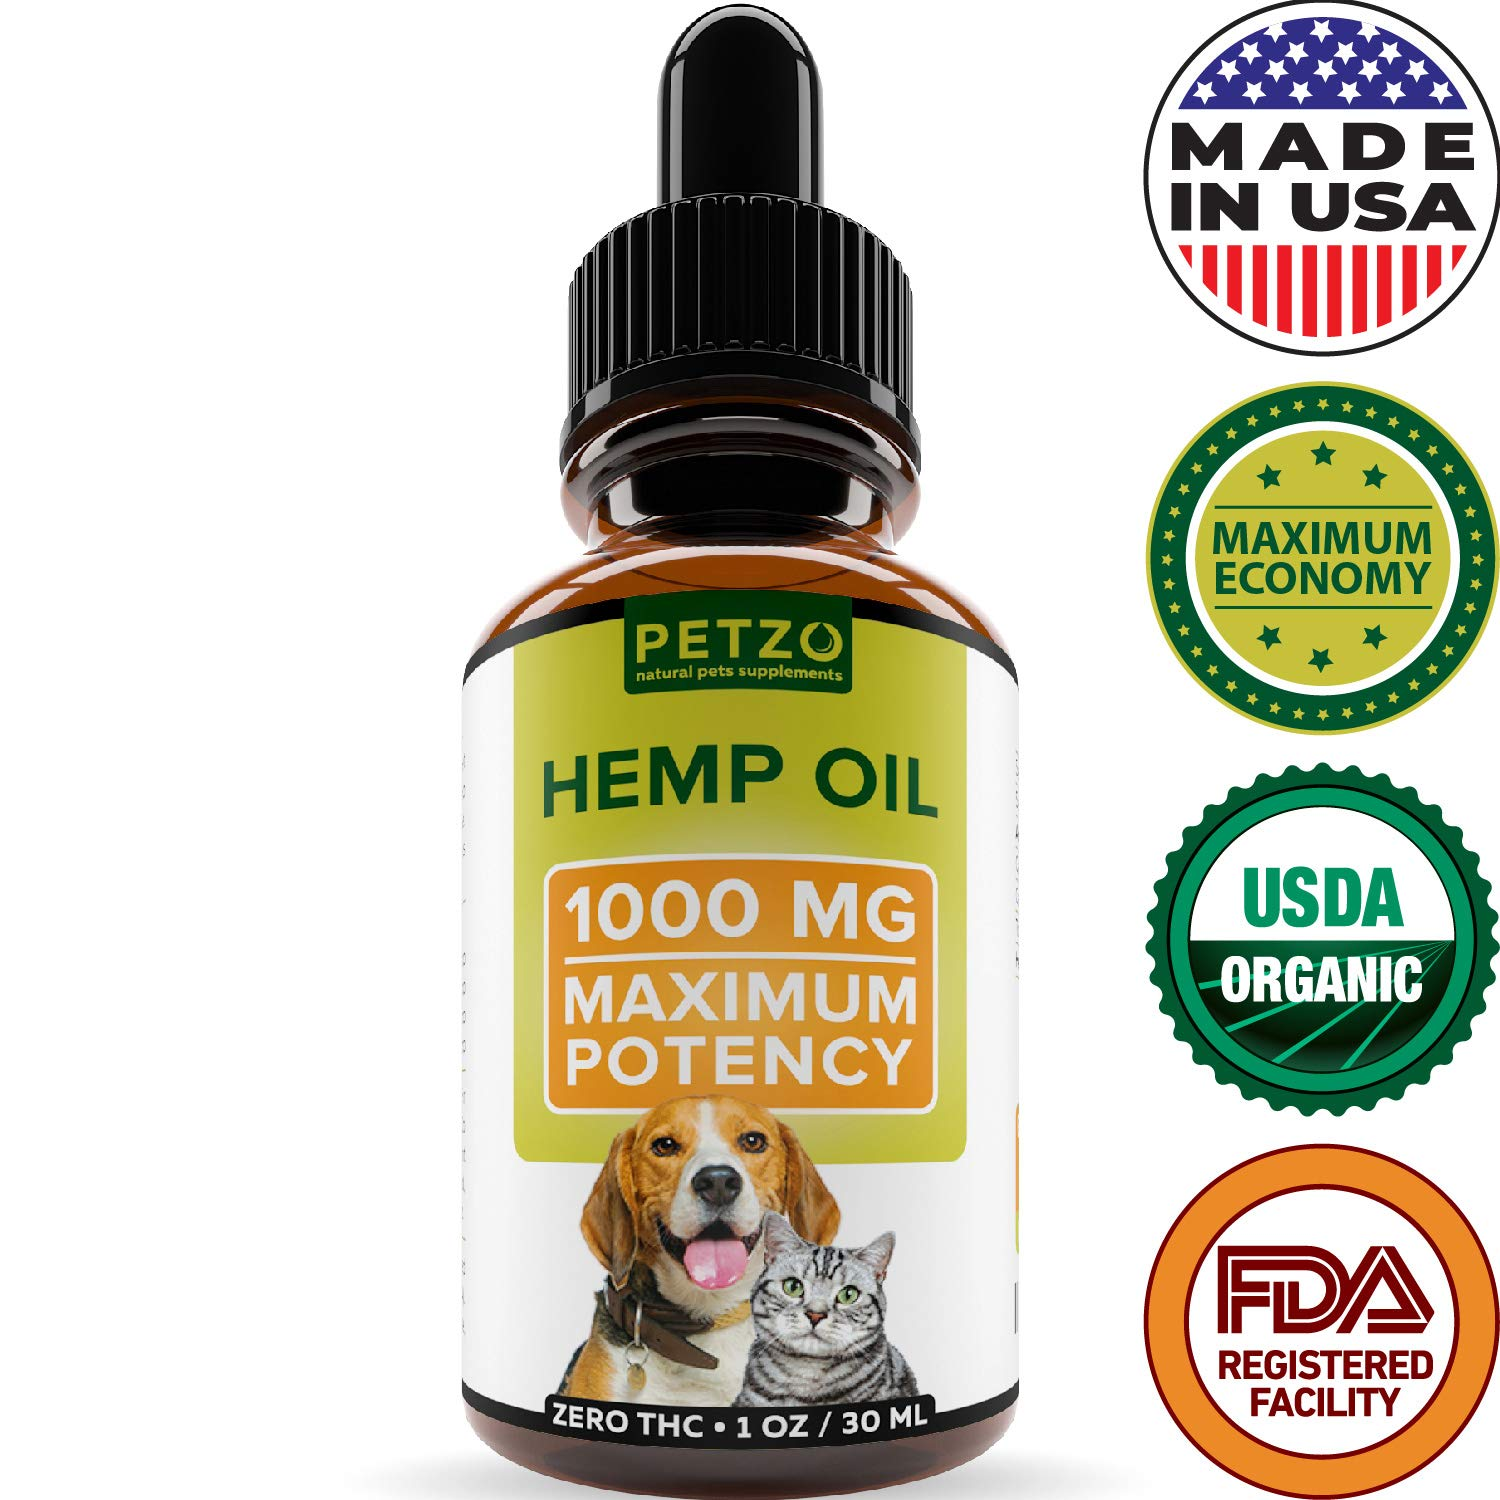 Full Spectrum Hemp Oil for Dogs and Cats - 1000 mg - Supports Hip & Joint Health, Natural Relief for Pain, Anxiety & Separation - 100% Pure Organic Hemp Extract - Non-GMO - Easily Apply to Treats